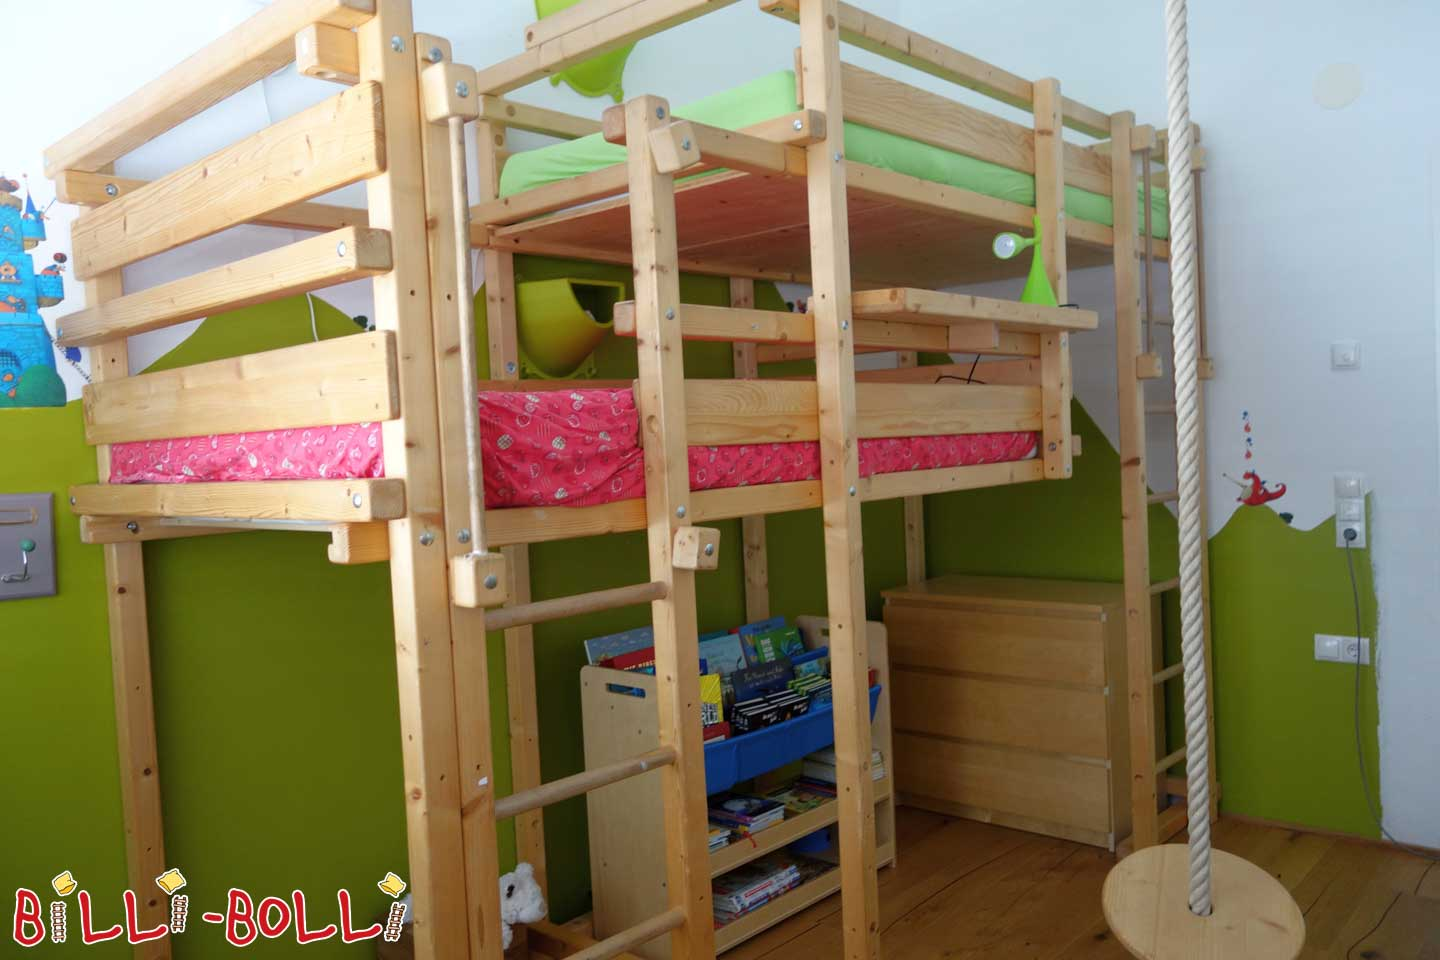 Both-above bed (second hand kids' furniture)